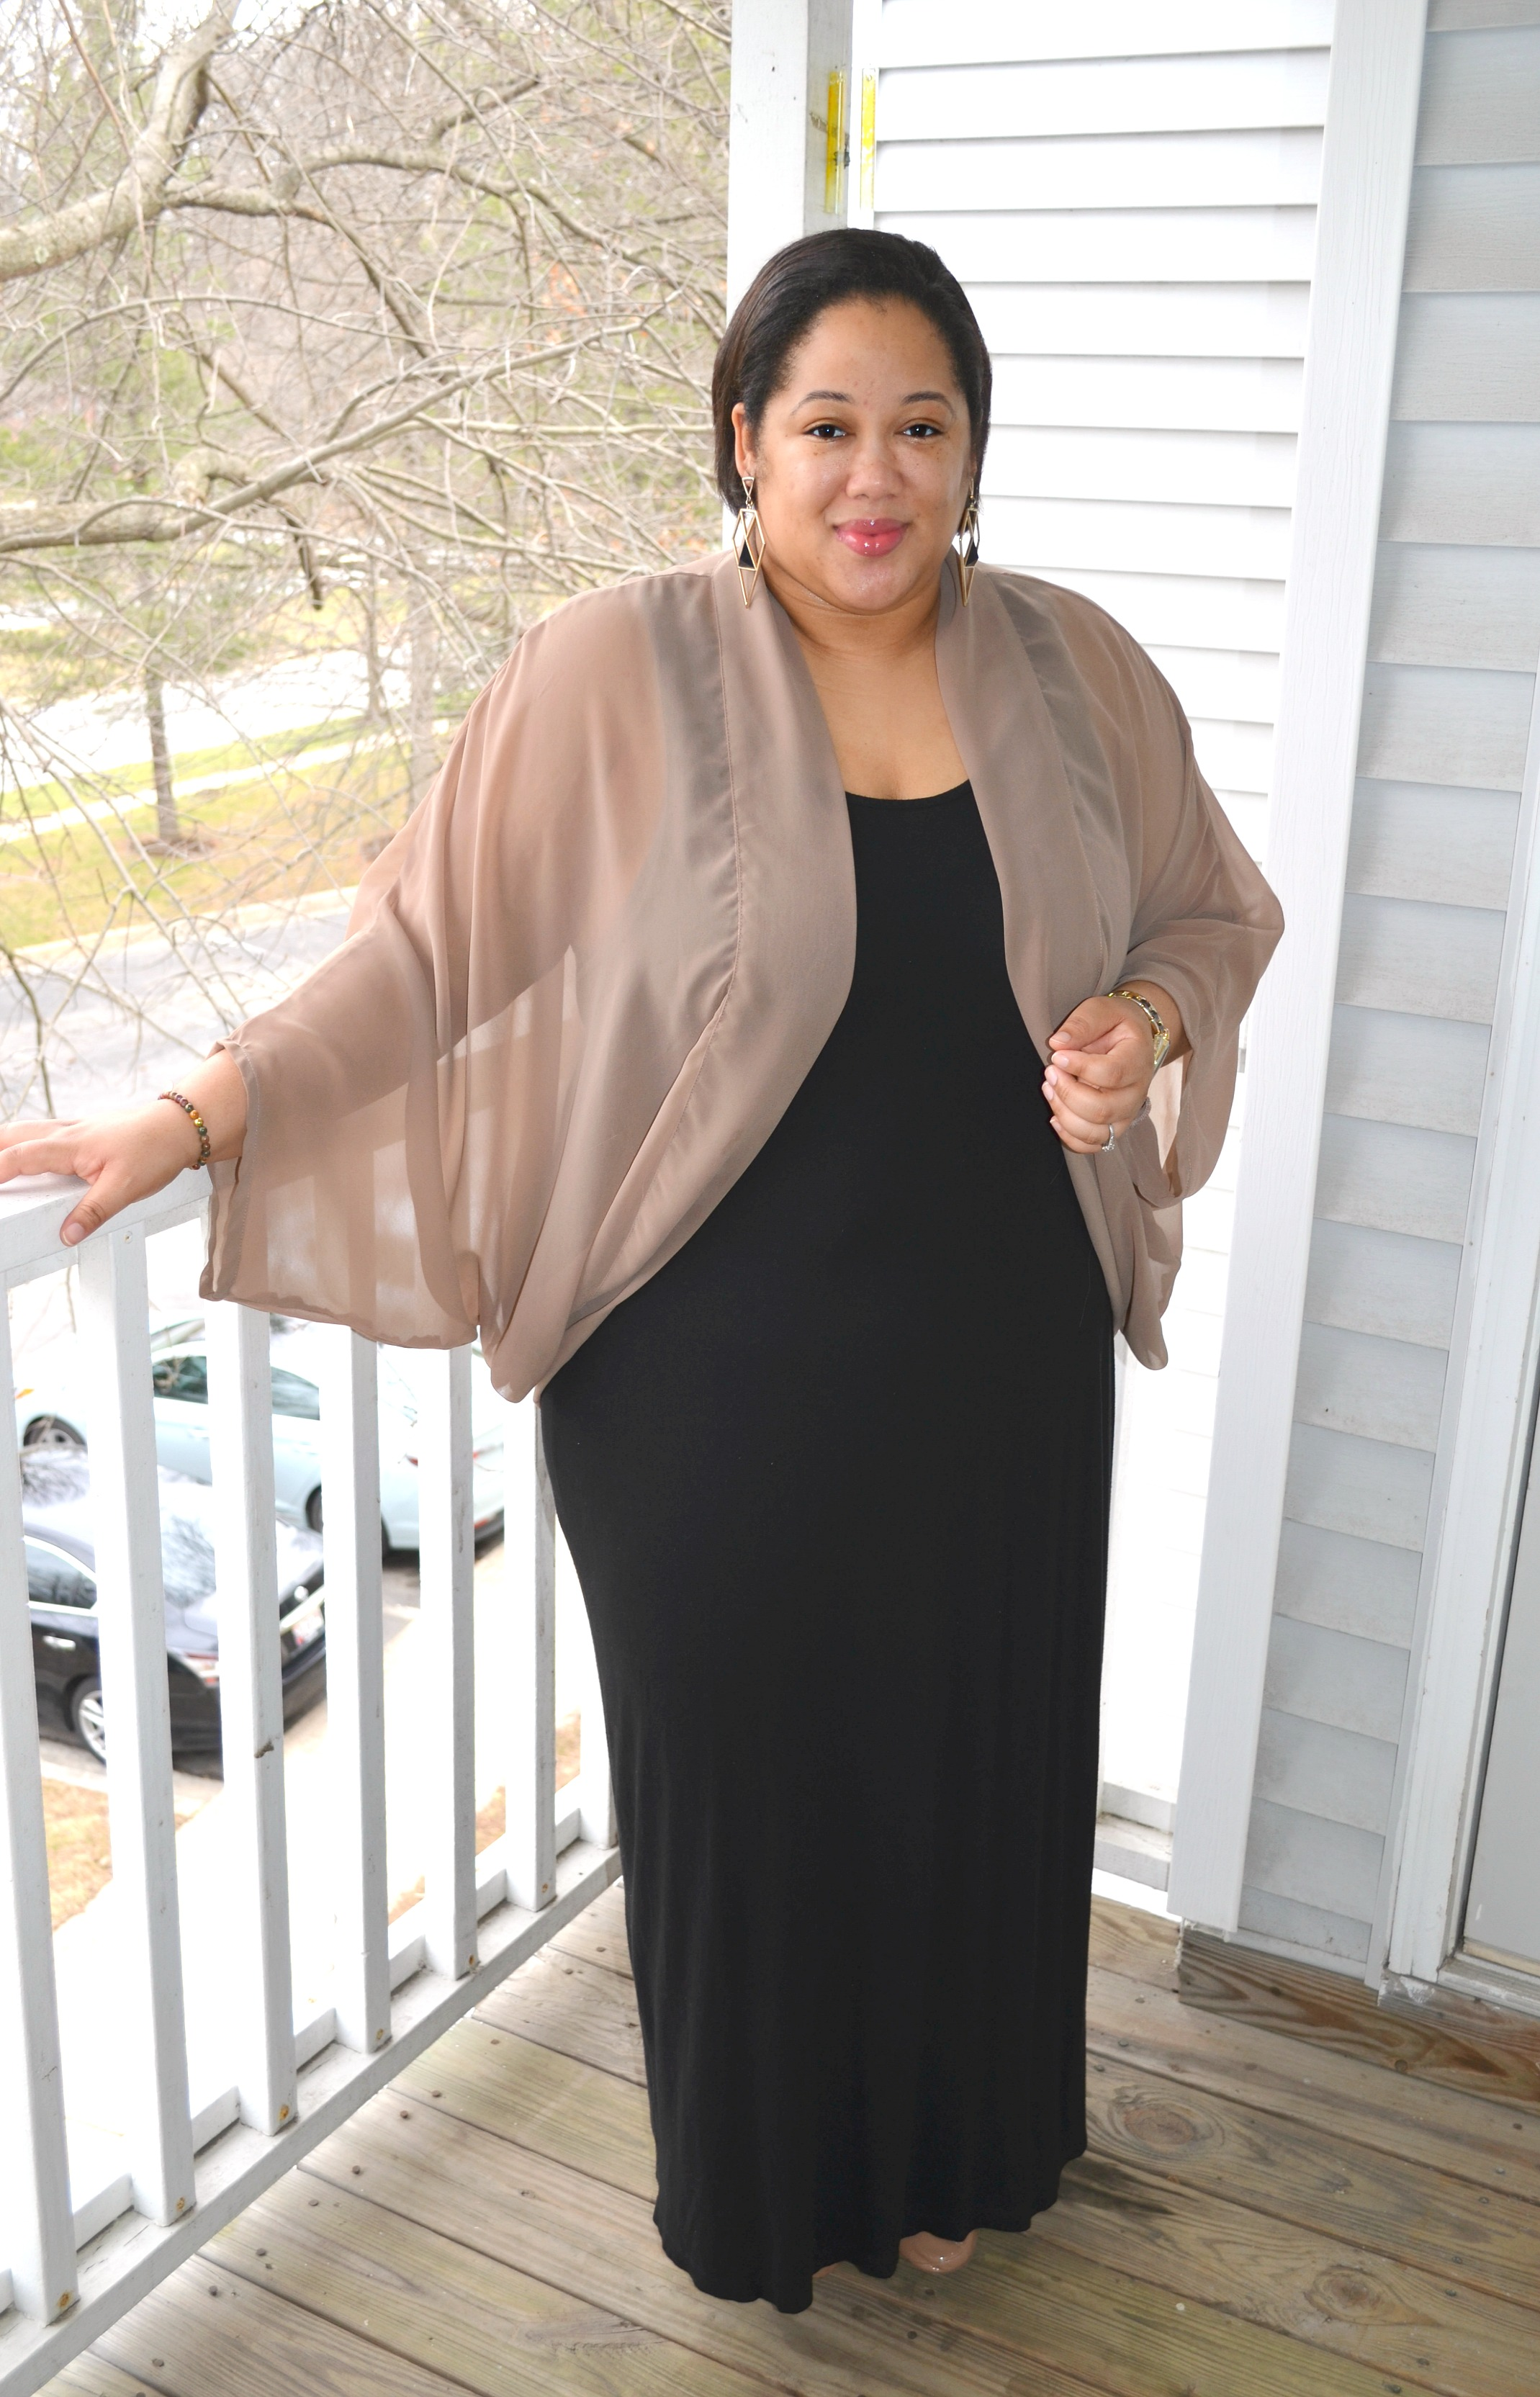 Maxi Dress and Cardigan - OOTD